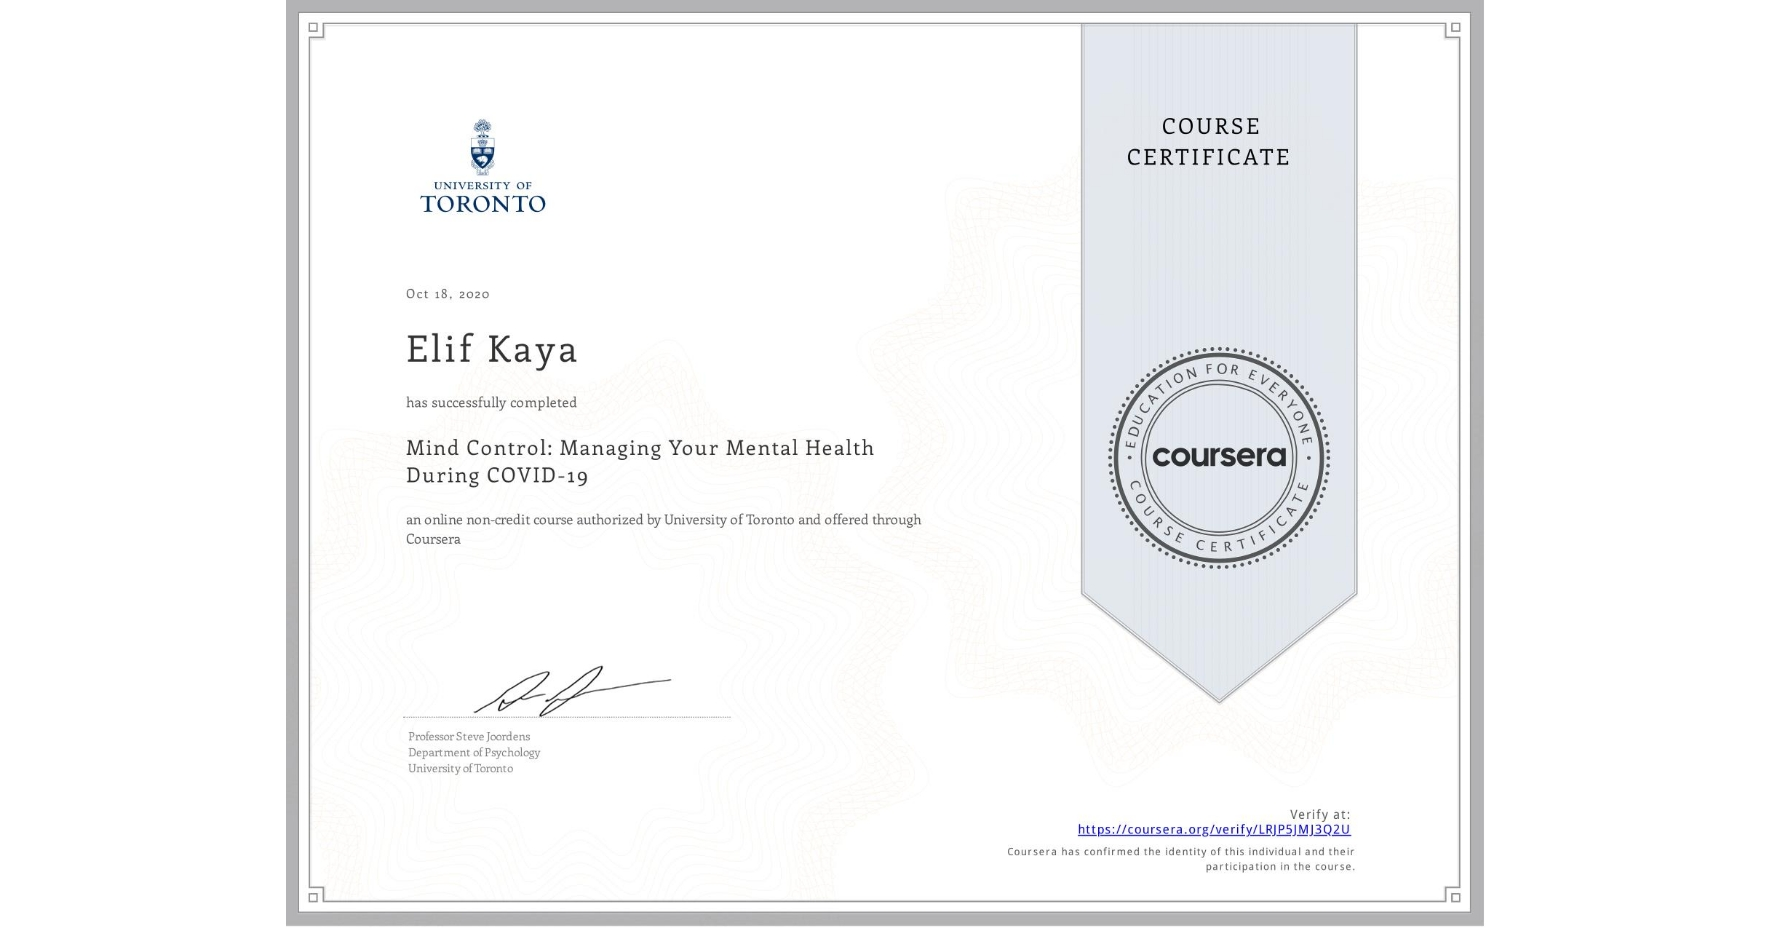 View certificate for Elif Kaya, Mind Control: Managing Your Mental Health During COVID-19, an online non-credit course authorized by University of Toronto and offered through Coursera